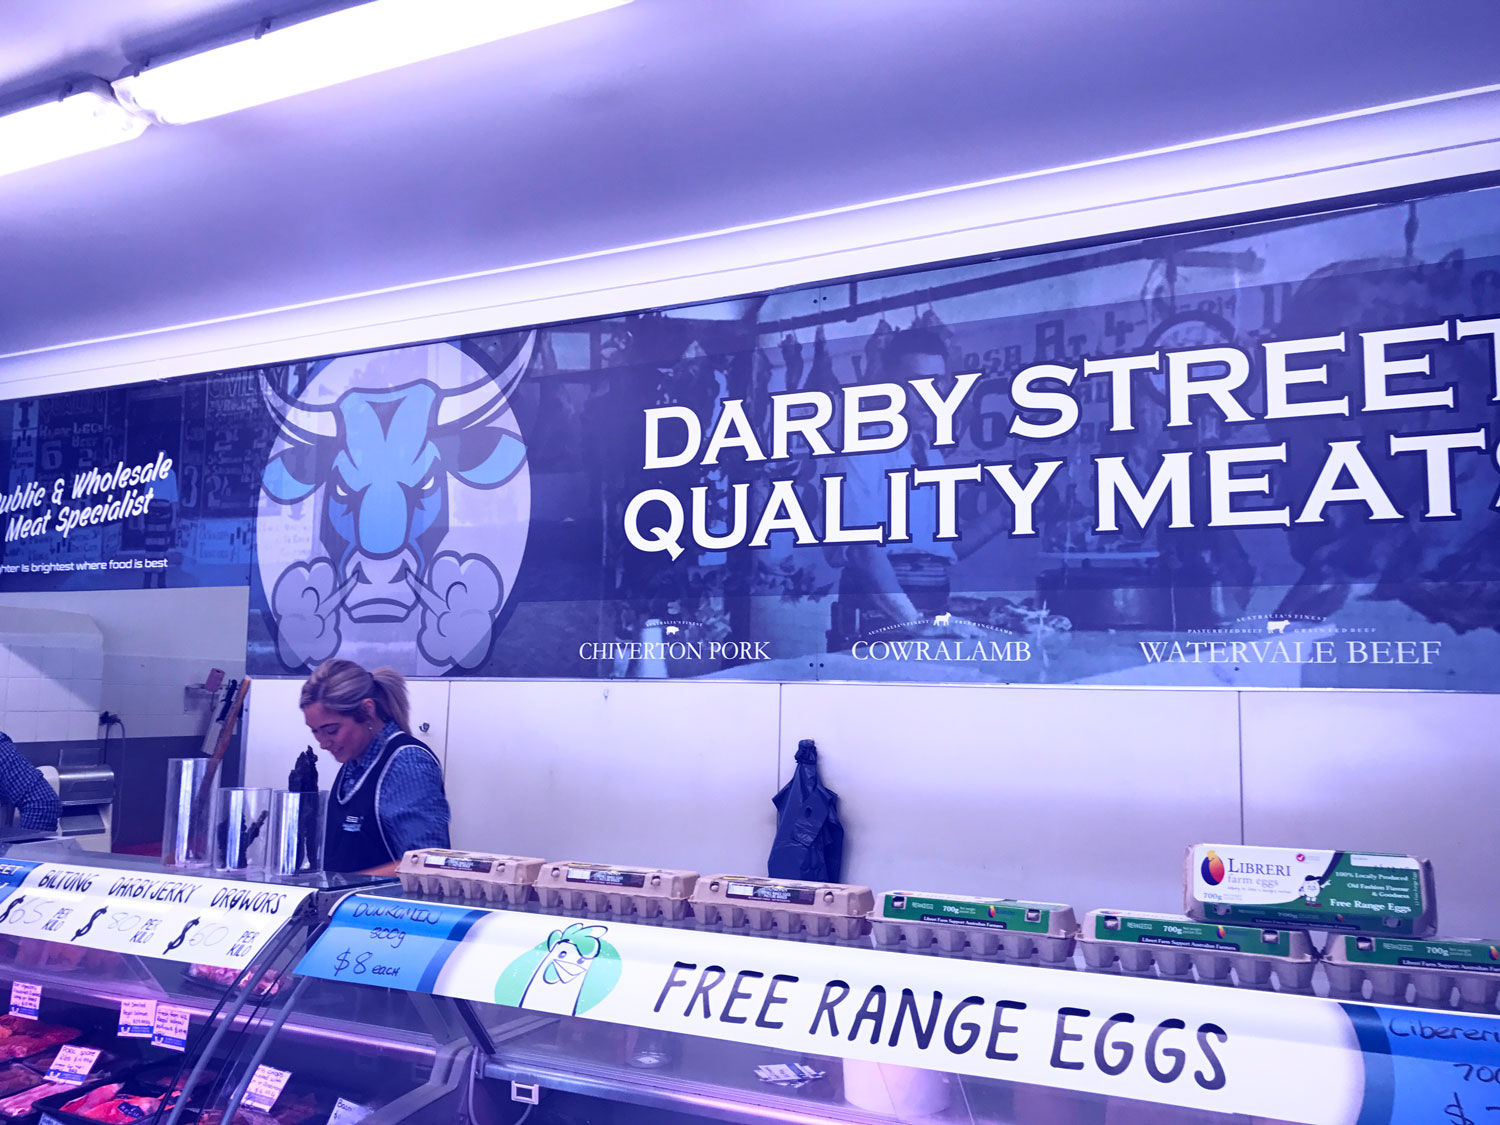 darby-street-quality-meats-internal-signs-chanelle.jpg